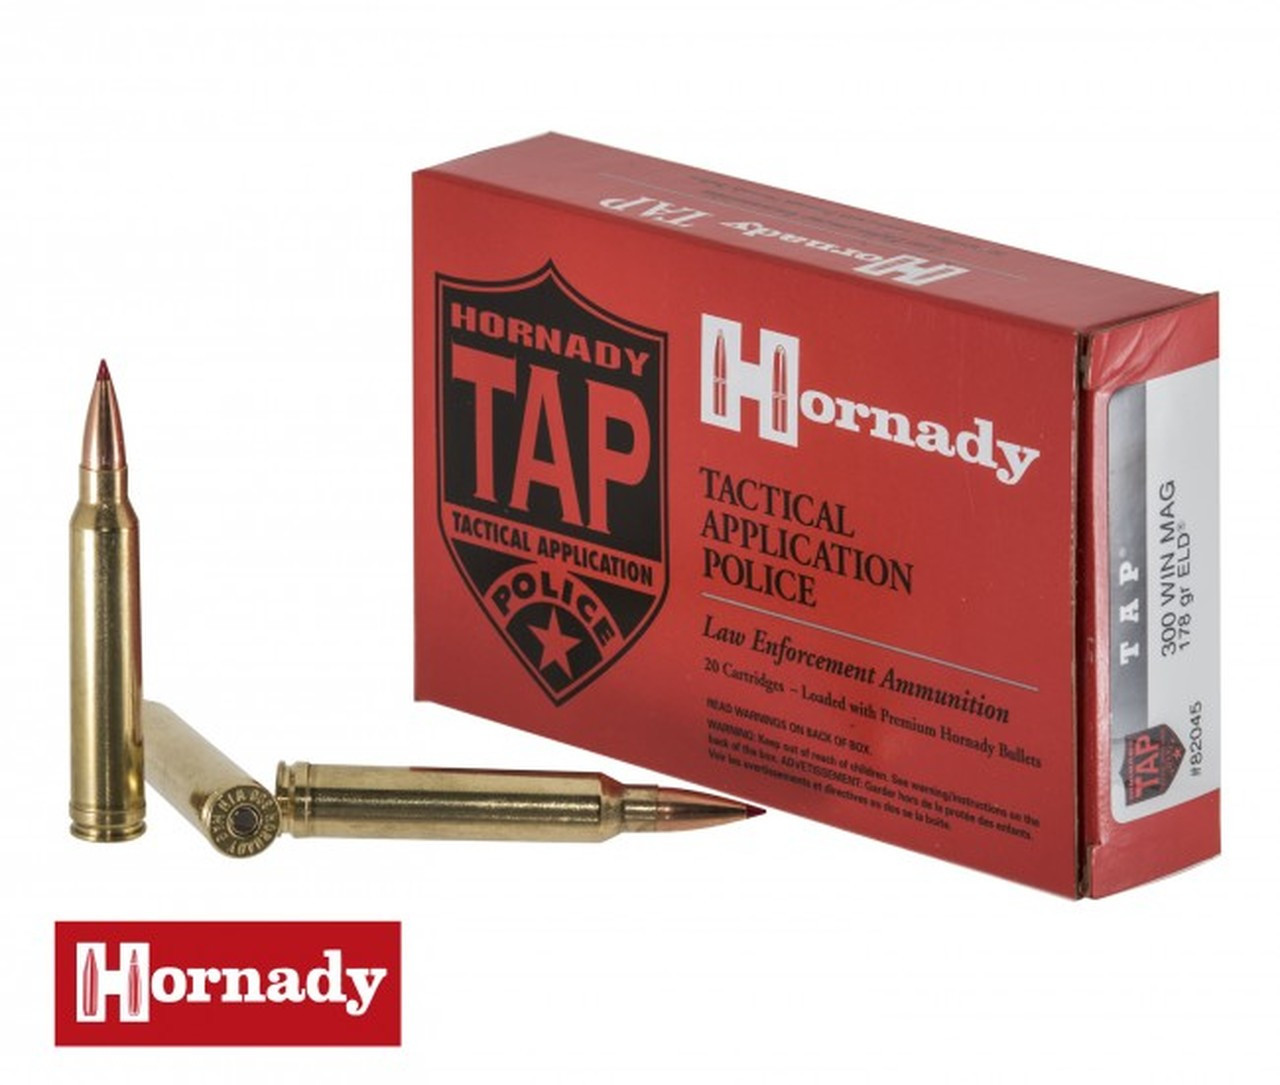 Hornady 300 Win Mag Ammunition TAP 82045 178 Grain ELD 20 Rounds